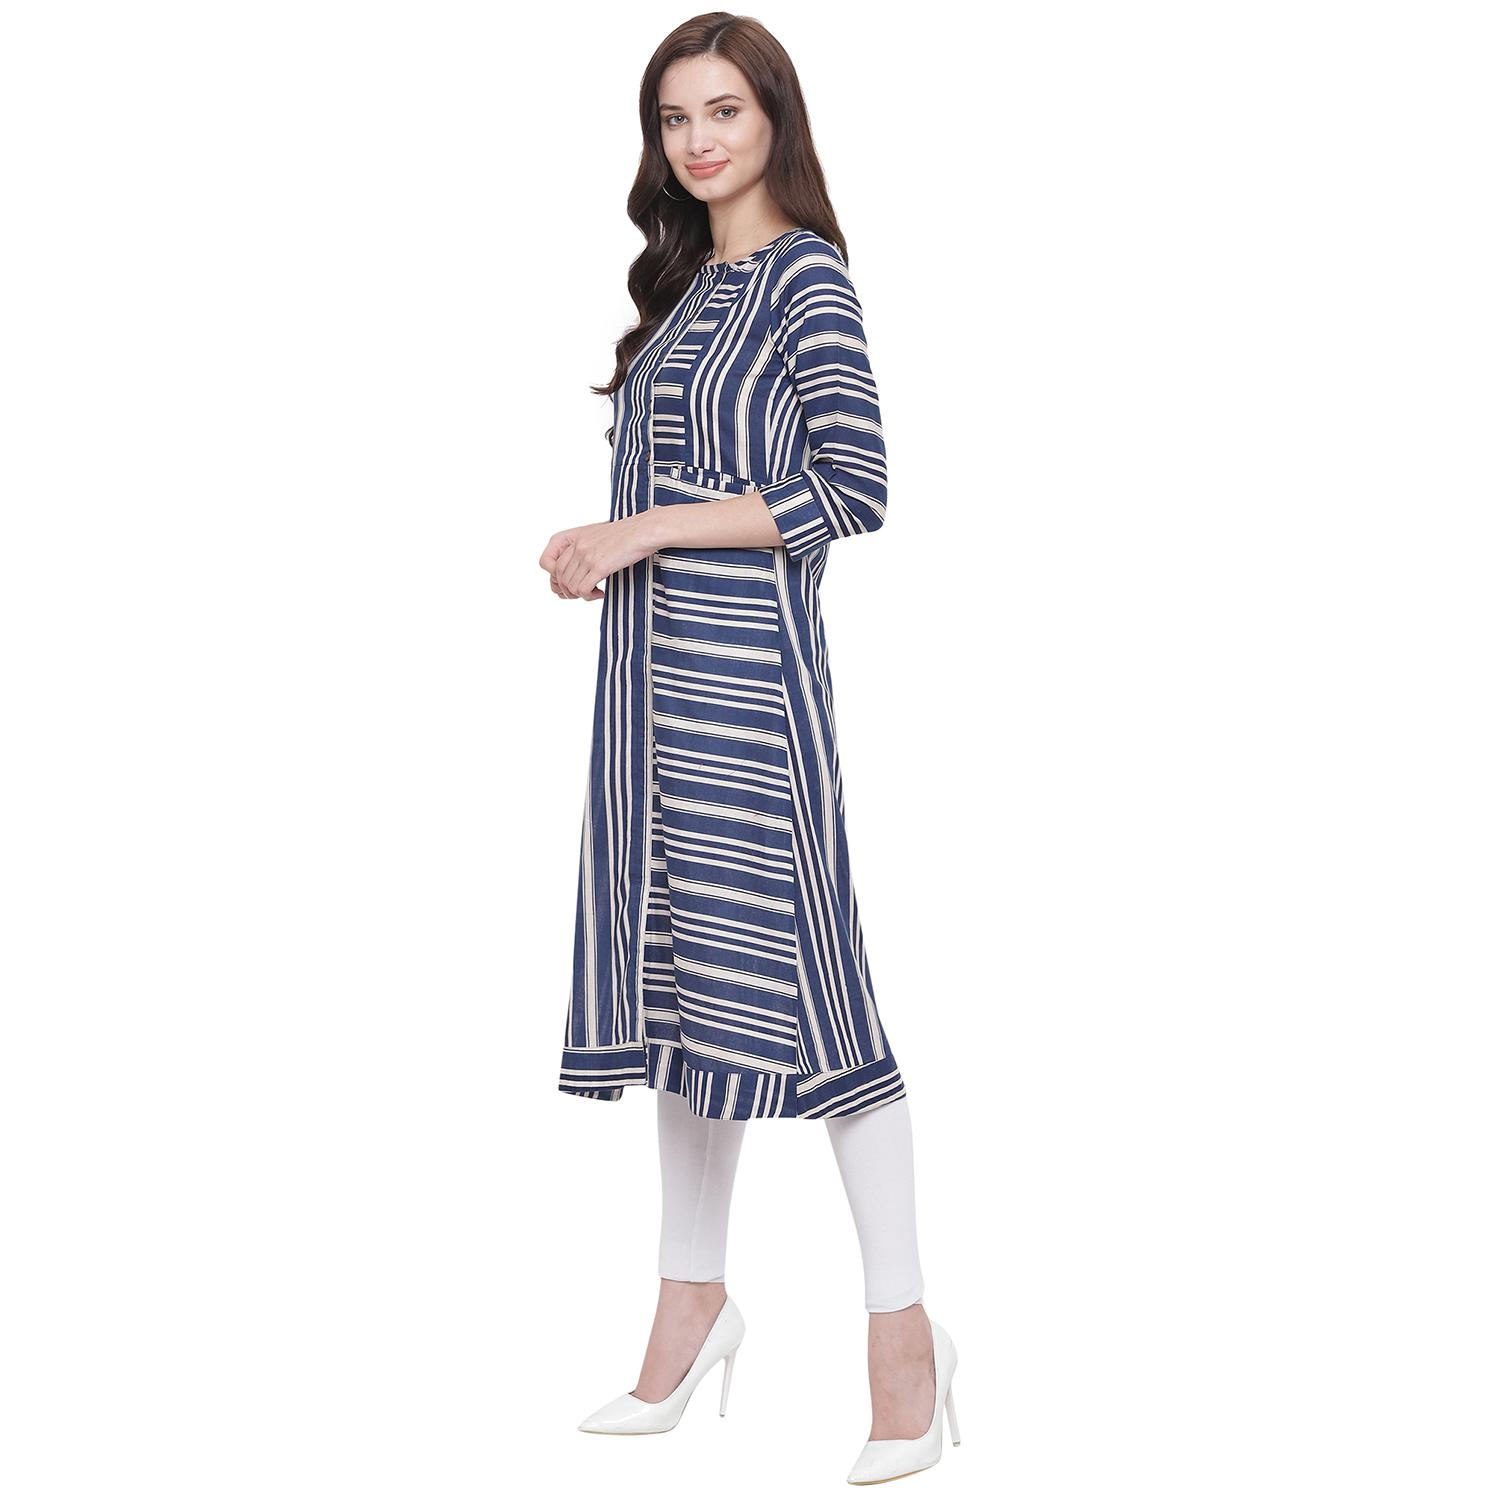 Fabnest - Blue Colored Casual Wear Stripes Printed Cotton Kurti